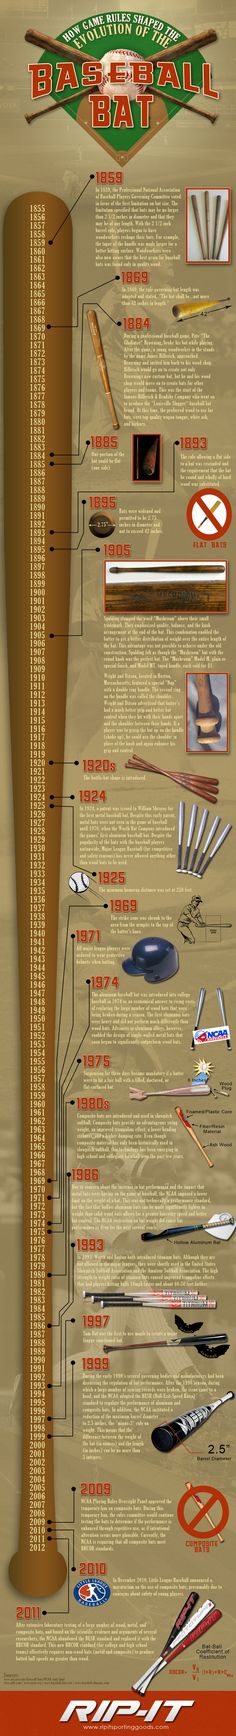 See how the history and technology of the baseball bat has changed over the years in this infographic by RIP-IT Sporting Goods. Baseball Crafts, Baseball Art, Baseball Quotes, Cardinals Baseball, Sports Baseball, Baseball Players, Softball, Baseball Stuff, Basketball